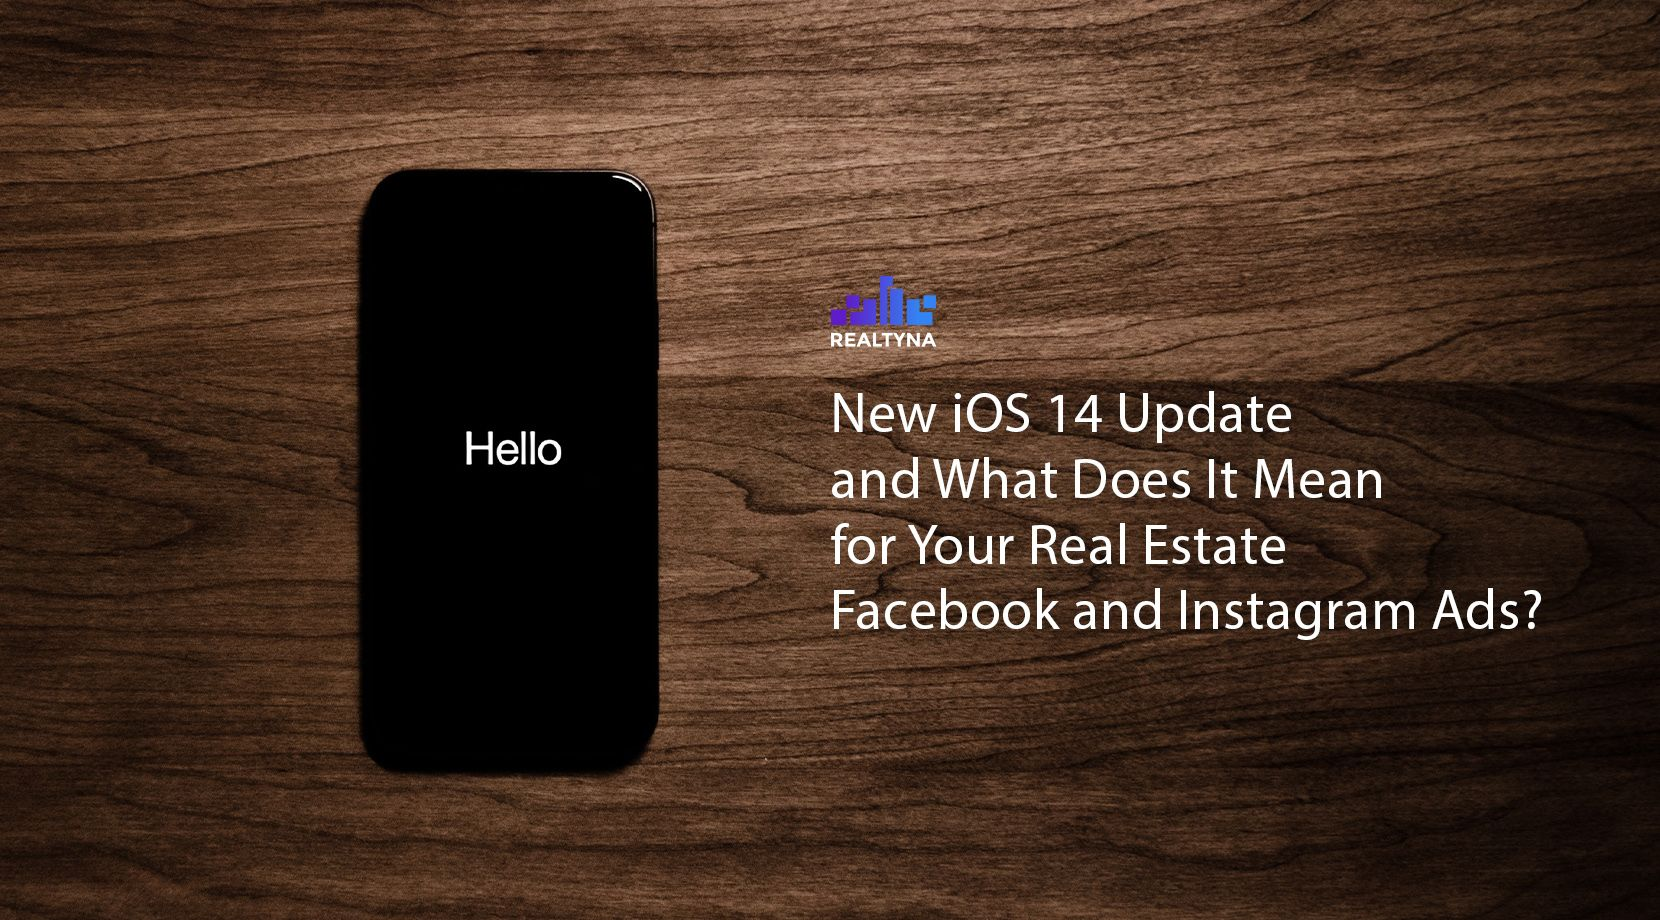 New iOS 14 Update and What Does It Mean for Your Real Estate Facebook and Instagram Ads?